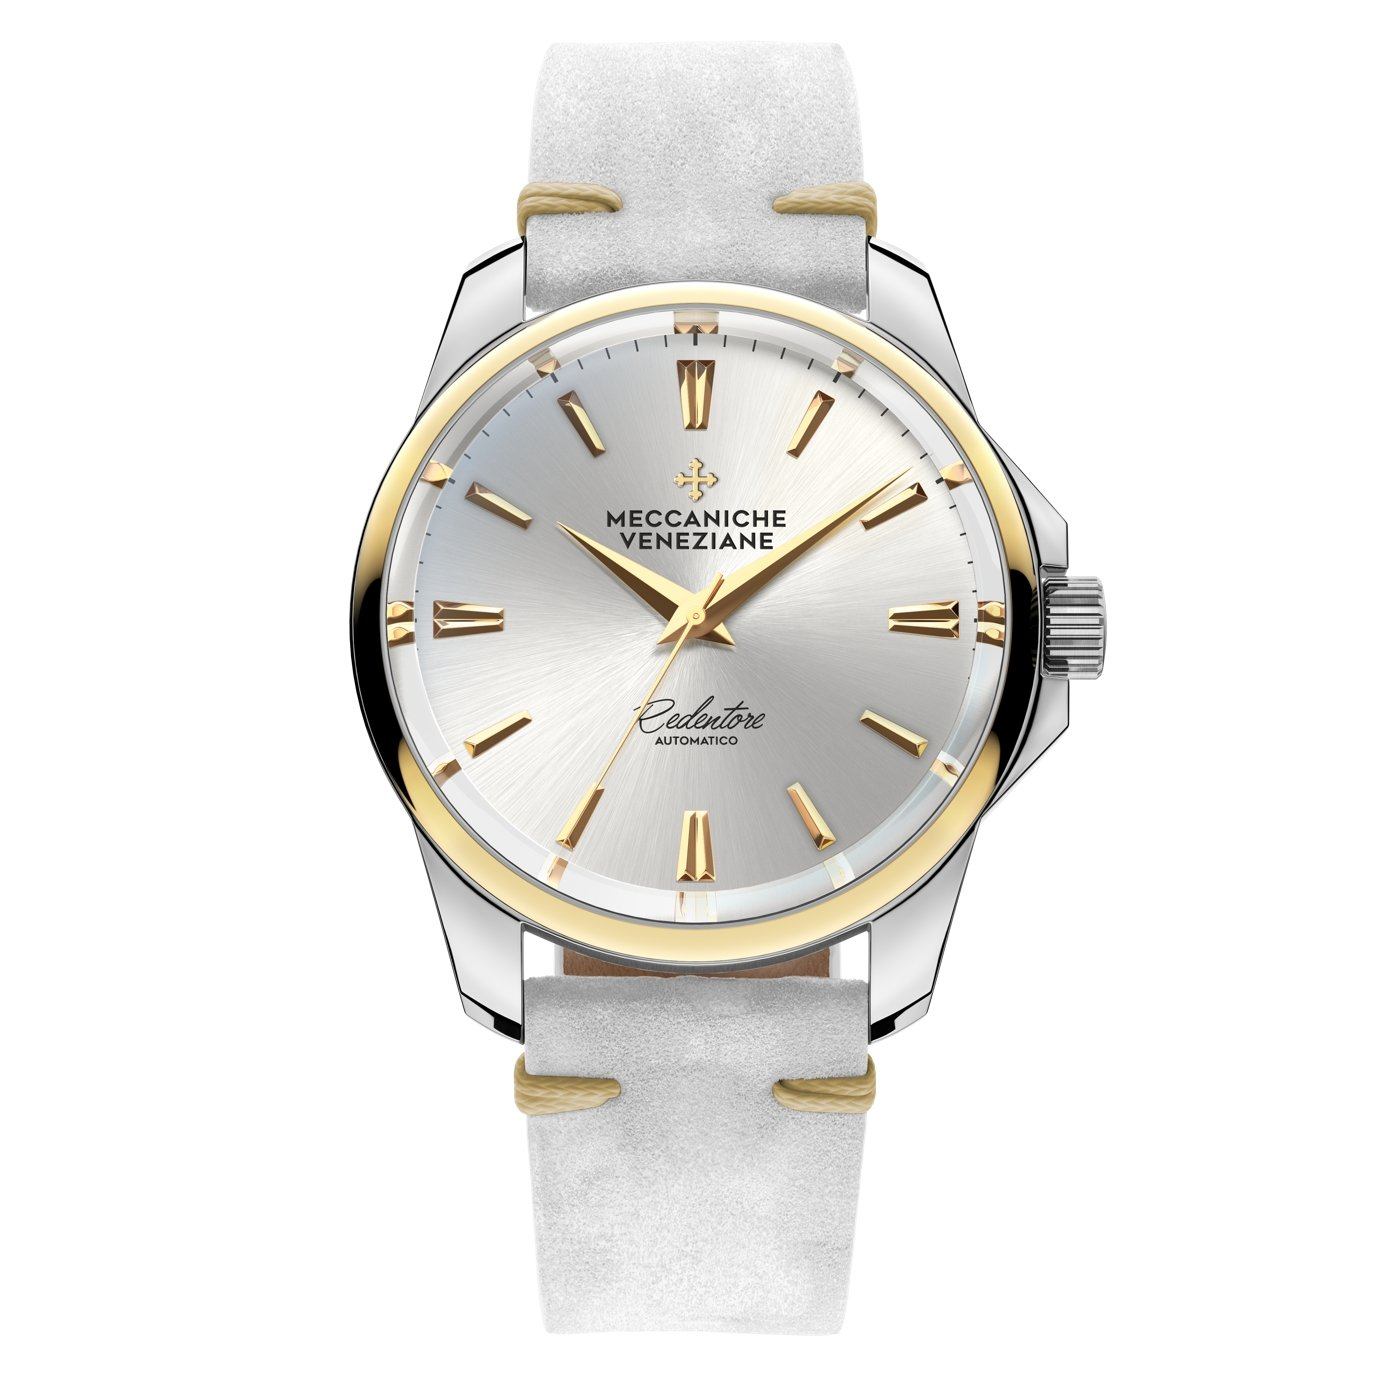 Meccaniche Veneziane Redentore 36 White - Watches & Crystals